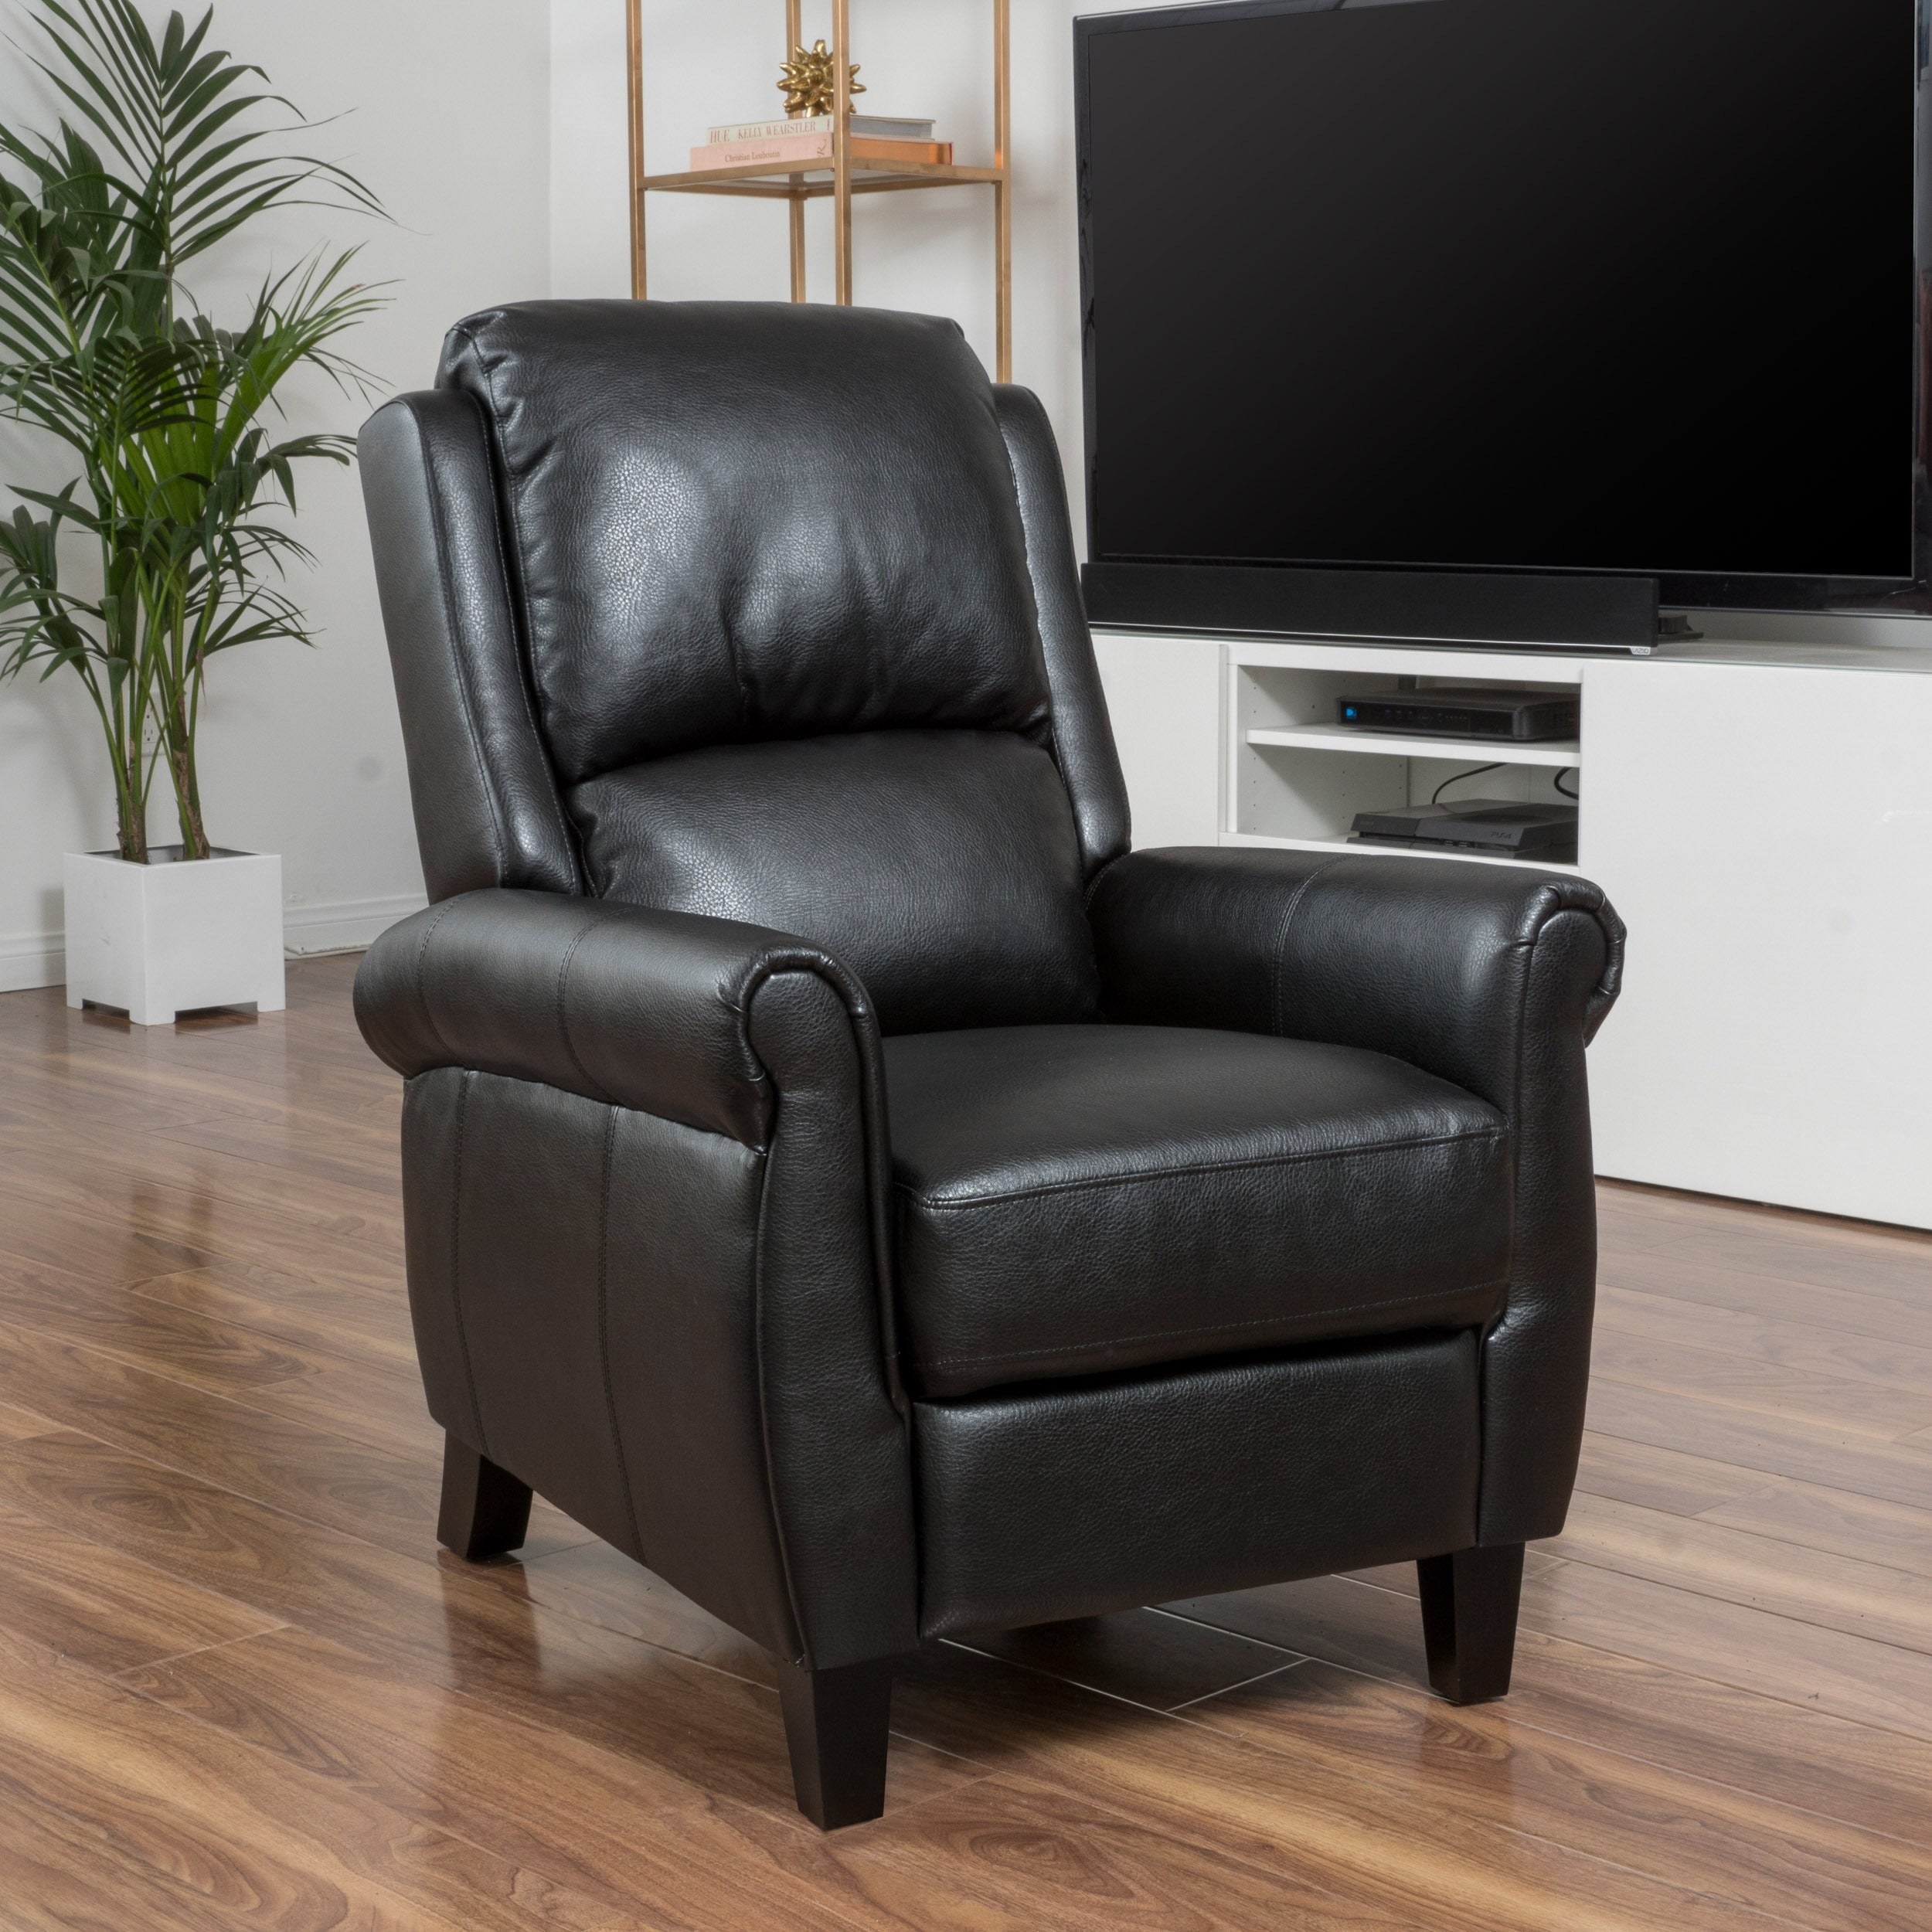 Haddan PU Leather Recliner Club Chair by Christopher Knig...